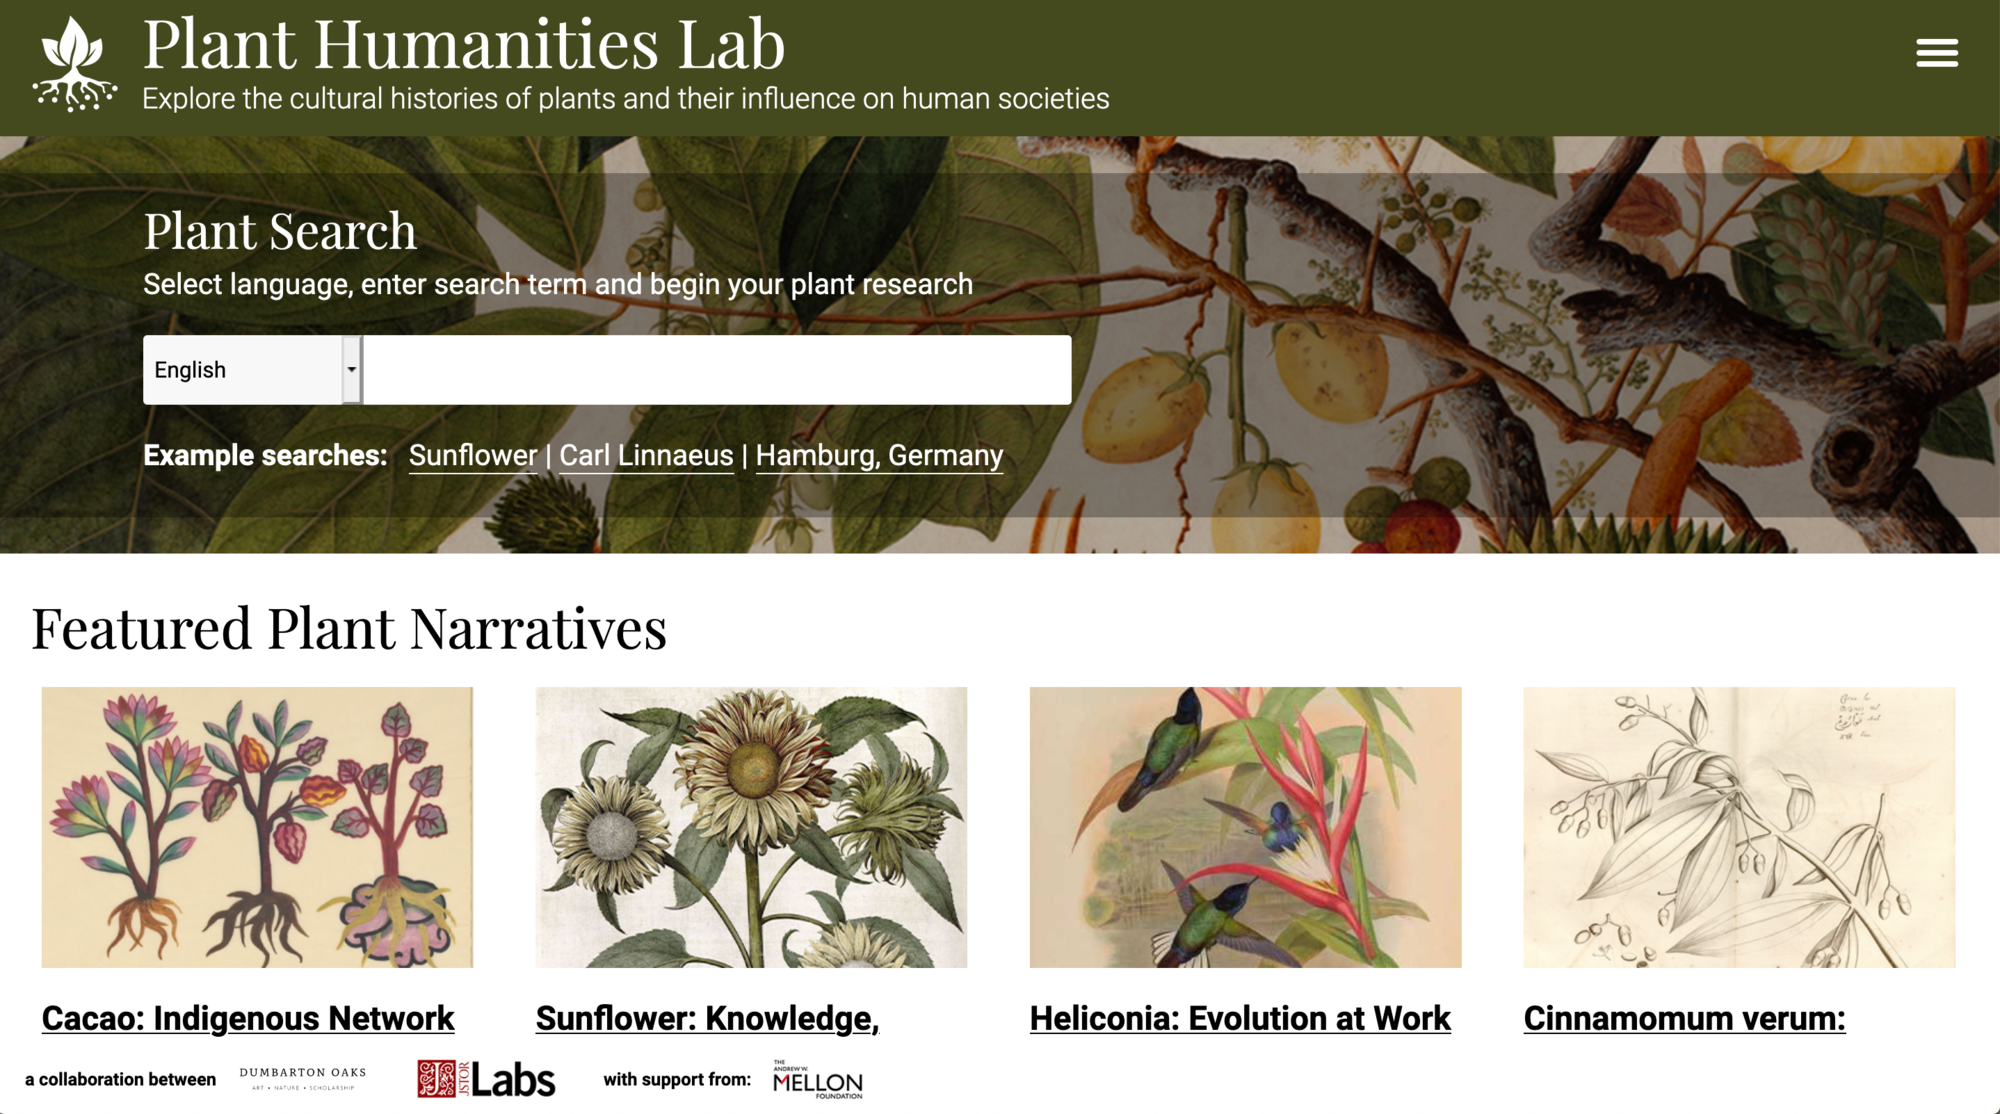 Screen capture of the Plant Humanities Lab homepage